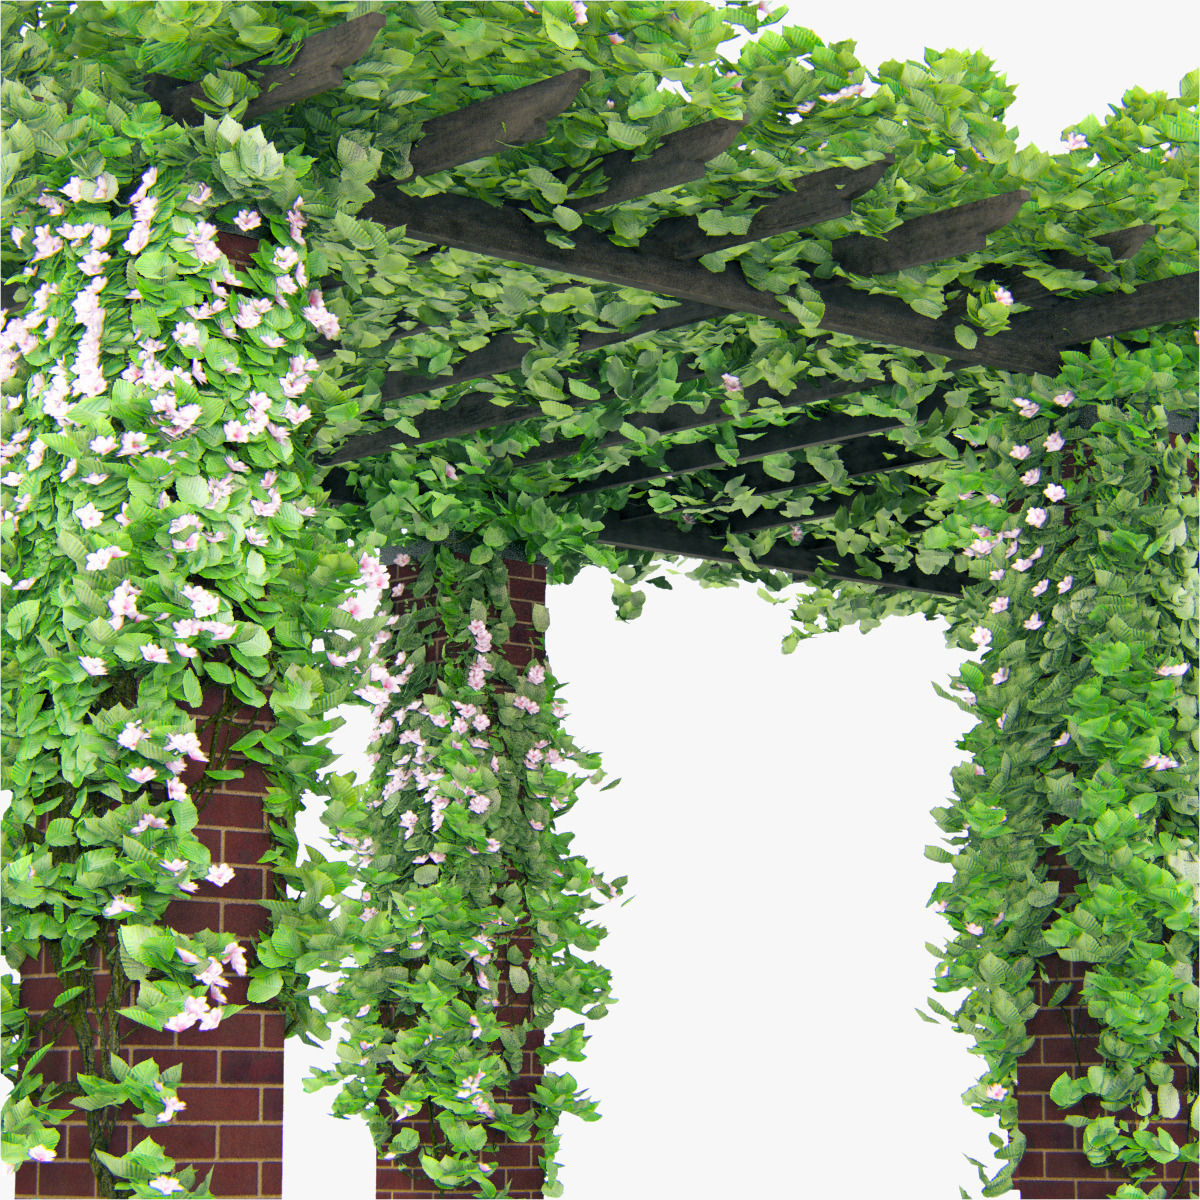 100 good climbing plants for pergolas best climbing plants for pergolas and trellises - Pergola climbing plants under natures roof ...